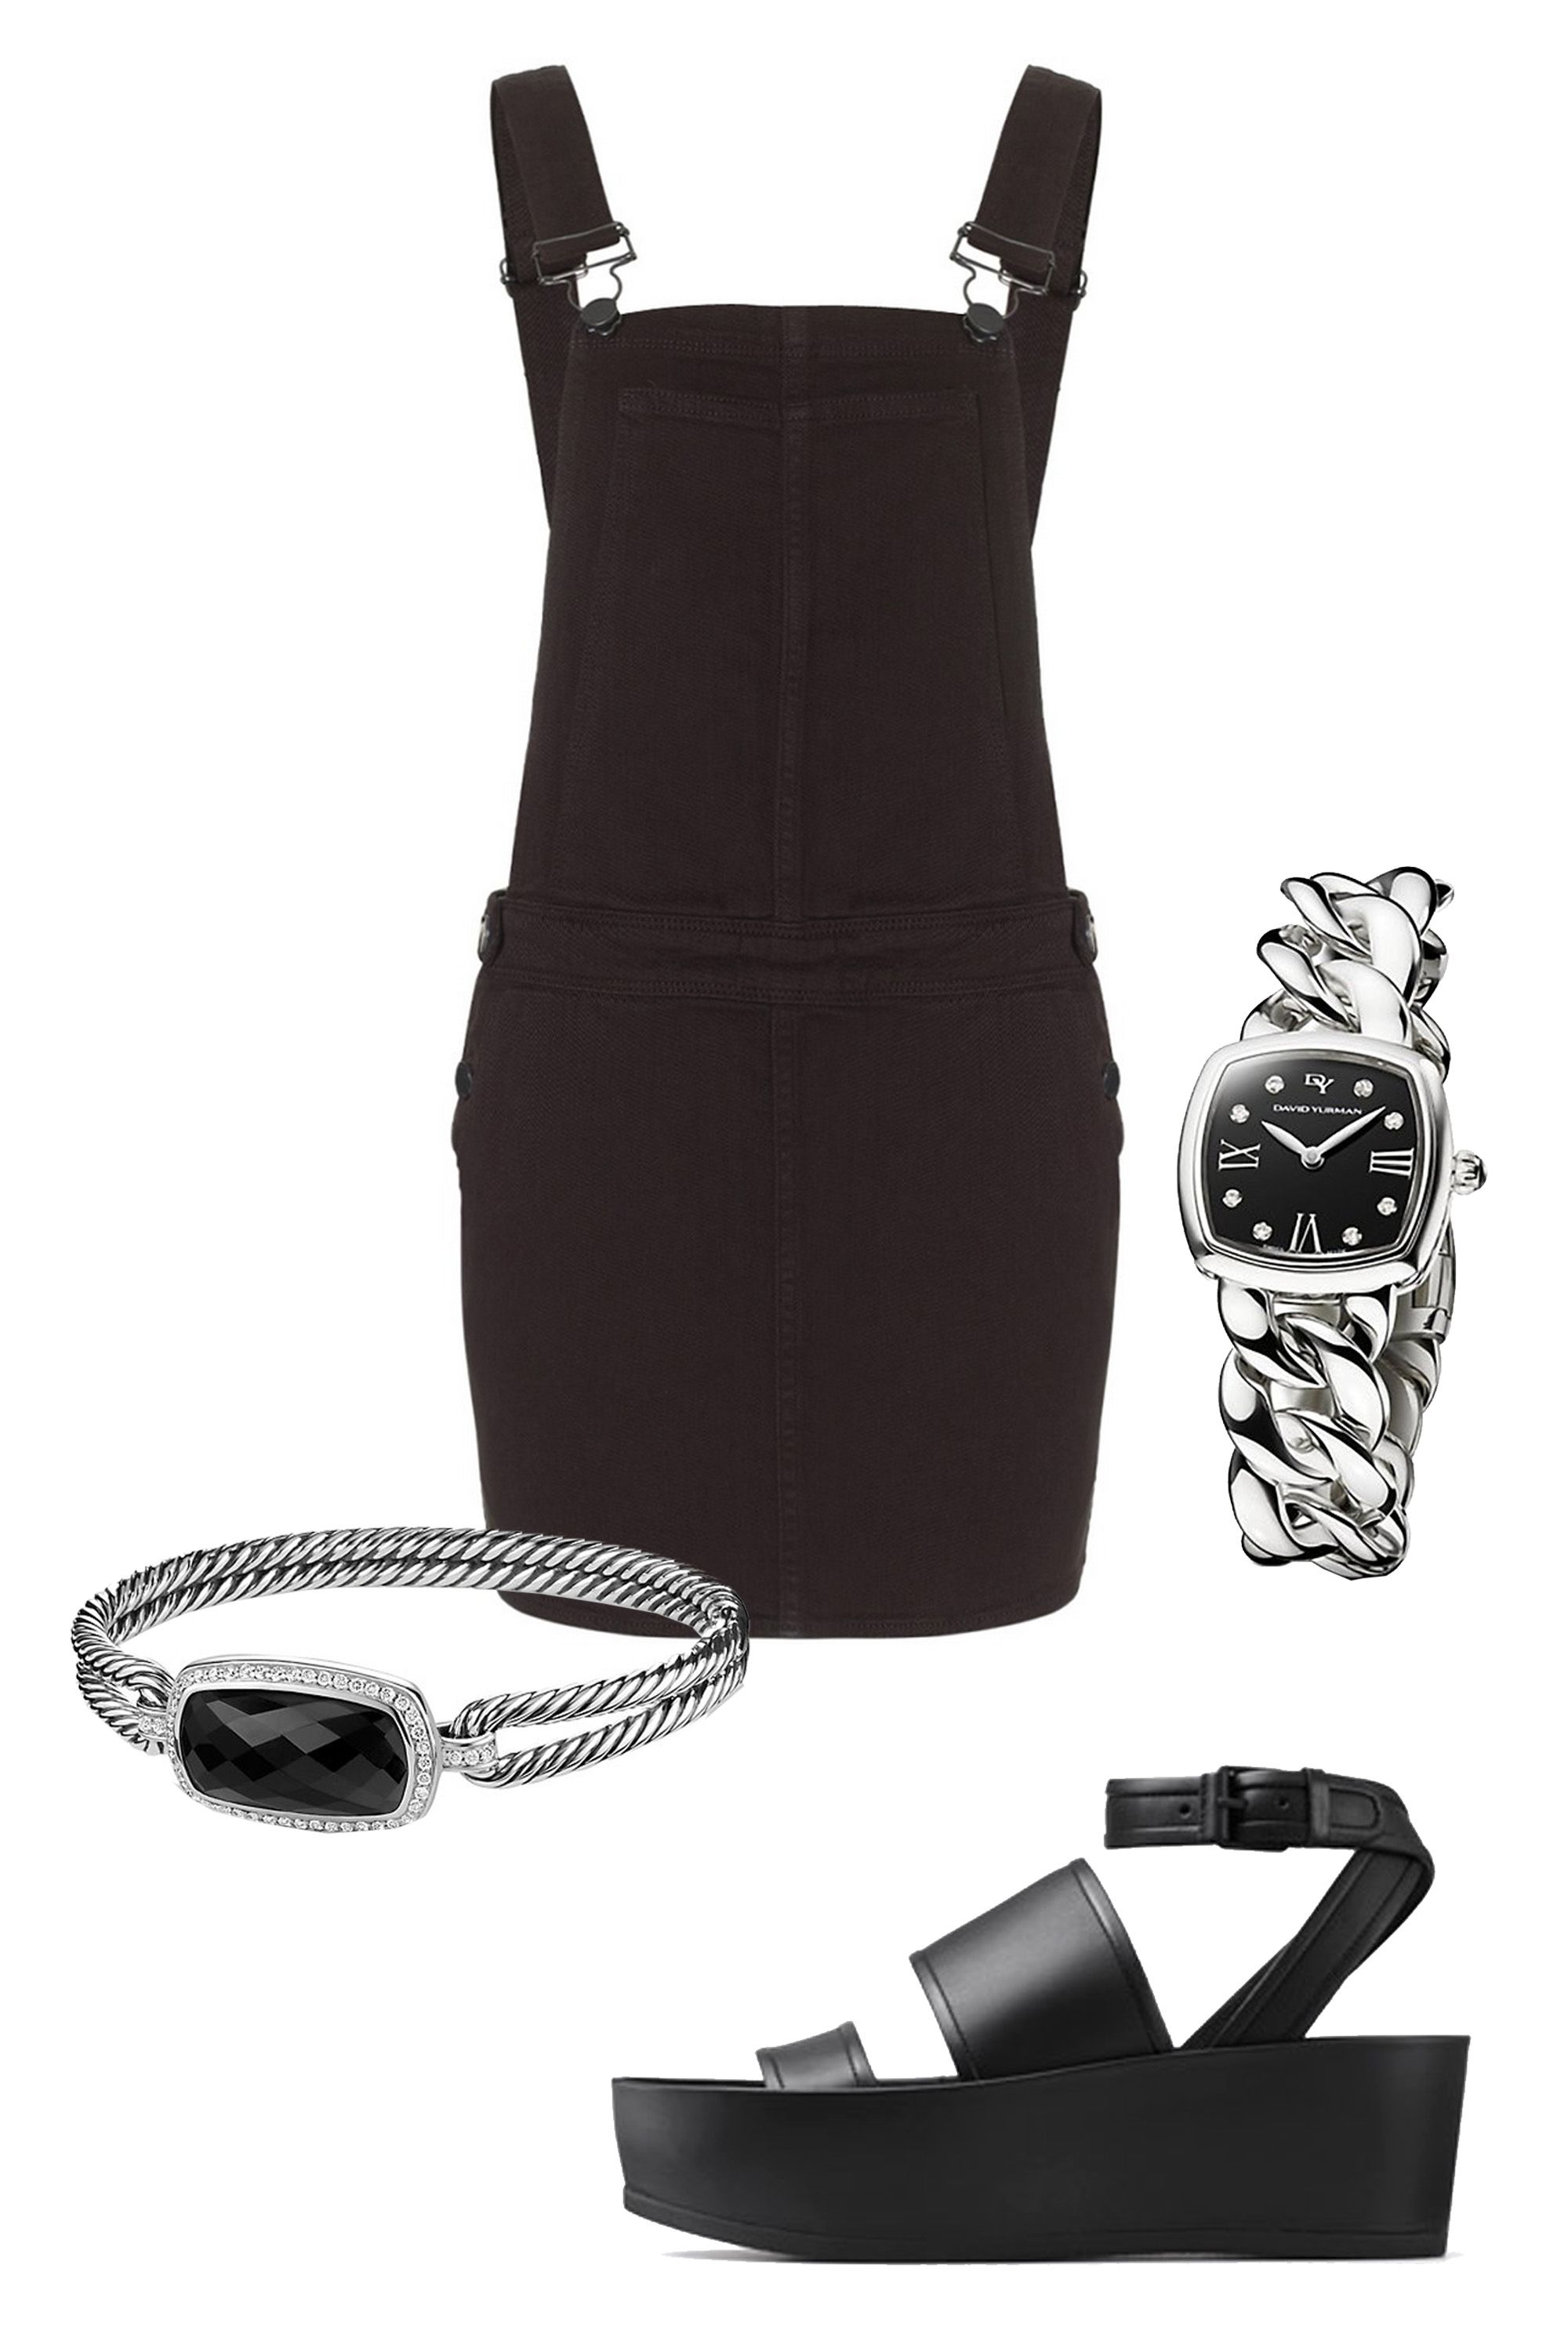 "Paige Denim Black Overall Danielle Dress, $178; &lt;a target=""_blank"" href=""http://rstyle.me/n/yzinubc6jf""&gt;avenue32.com&lt;/a&gt;  David Yurman Albion 23mm Stainless Steel Quartz Watch with Diamonds, $1,850; &lt;a target=""_blank"" href=""http://www.davidyurman.com/products/women/watches/albion-23mm-stainless-steel-quartz-timepiece-with-diamonds-t9005.html?lpos=PLP-18&amp;amp;item=t9005qsstbrac&amp;amp;source=plp""&gt;davidyurman.com&lt;/a&gt;  David Yurman Albion Bracelet with Black Onyx and Diamonds, $2,100; &lt;a target=""_blank"" href=""http://www.davidyurman.com/products/women/bracelets/albion-bracelet-with-diamonds-b12421dss.html?lpos=PLP-13&amp;amp;item=b12421dssabodi&amp;amp;source=plp""&gt;davidyurman.com&lt;/a&gt;  Vince Vienna Leather Platform Sandals, $350; &lt;a target=""_blank"" href=""http://www.vince.com/vienna-leather-platform-sandals/invt/vnd4444m1&amp;amp;color=Black&amp;amp;bklist=icat,5,,accessories,wtopfootwear,wnsandalsB""&gt;vince.com&lt;/a&gt;   <!--EndFragment-->     <!--EndFragment-->     <!--EndFragment-->     <!--EndFragment-->"